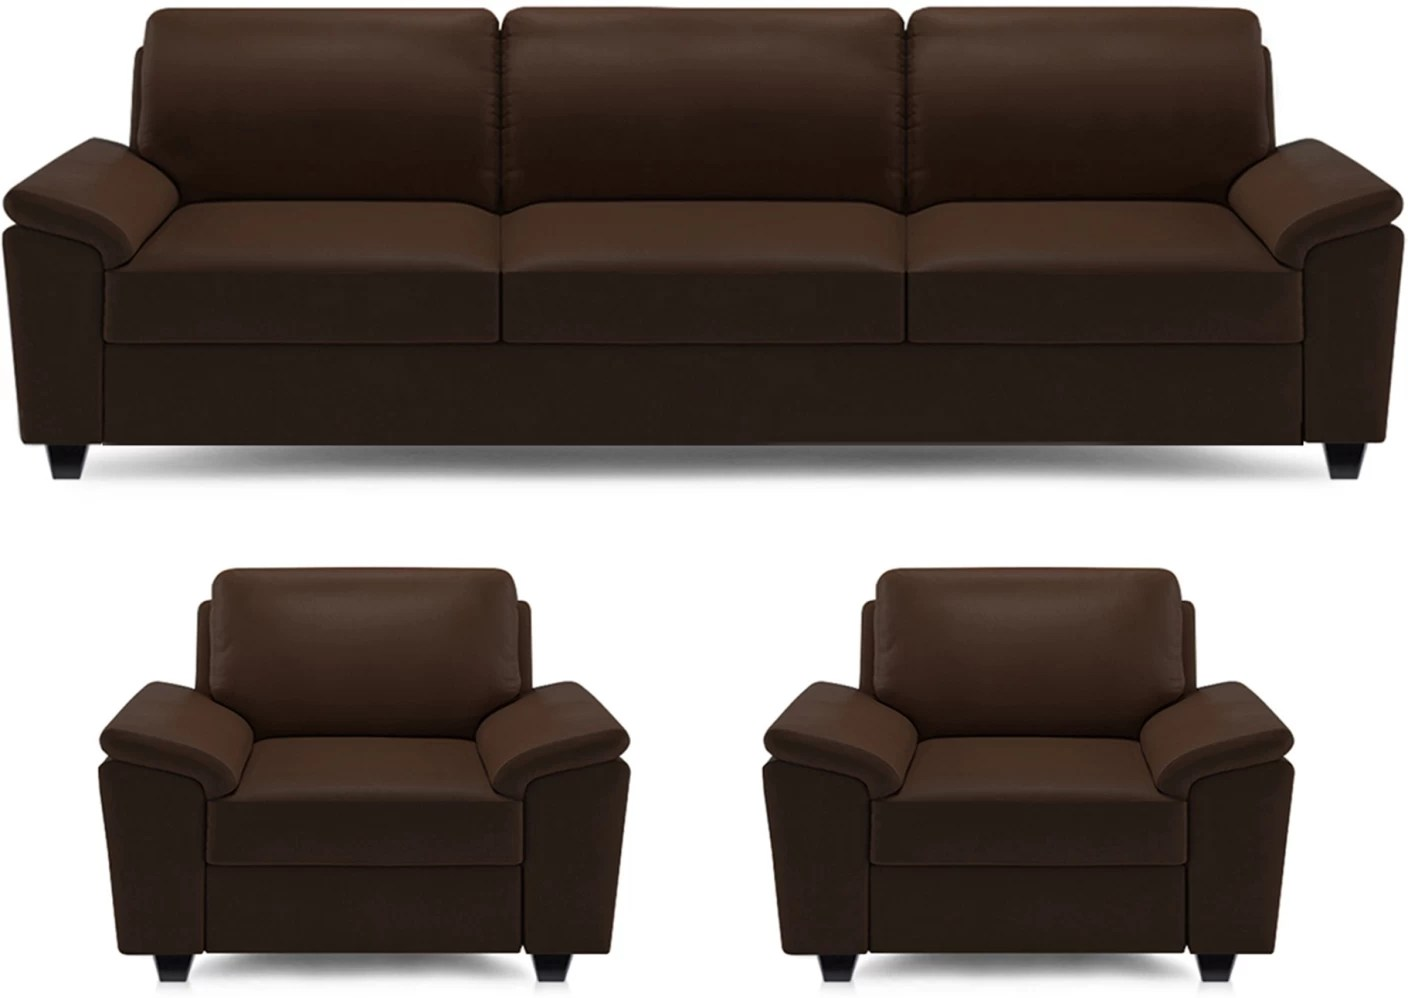 Sofa Set Price Haldwani Dolphin Oxford Leatherette 3 43 1 43 1 Brown Sofa Set Price